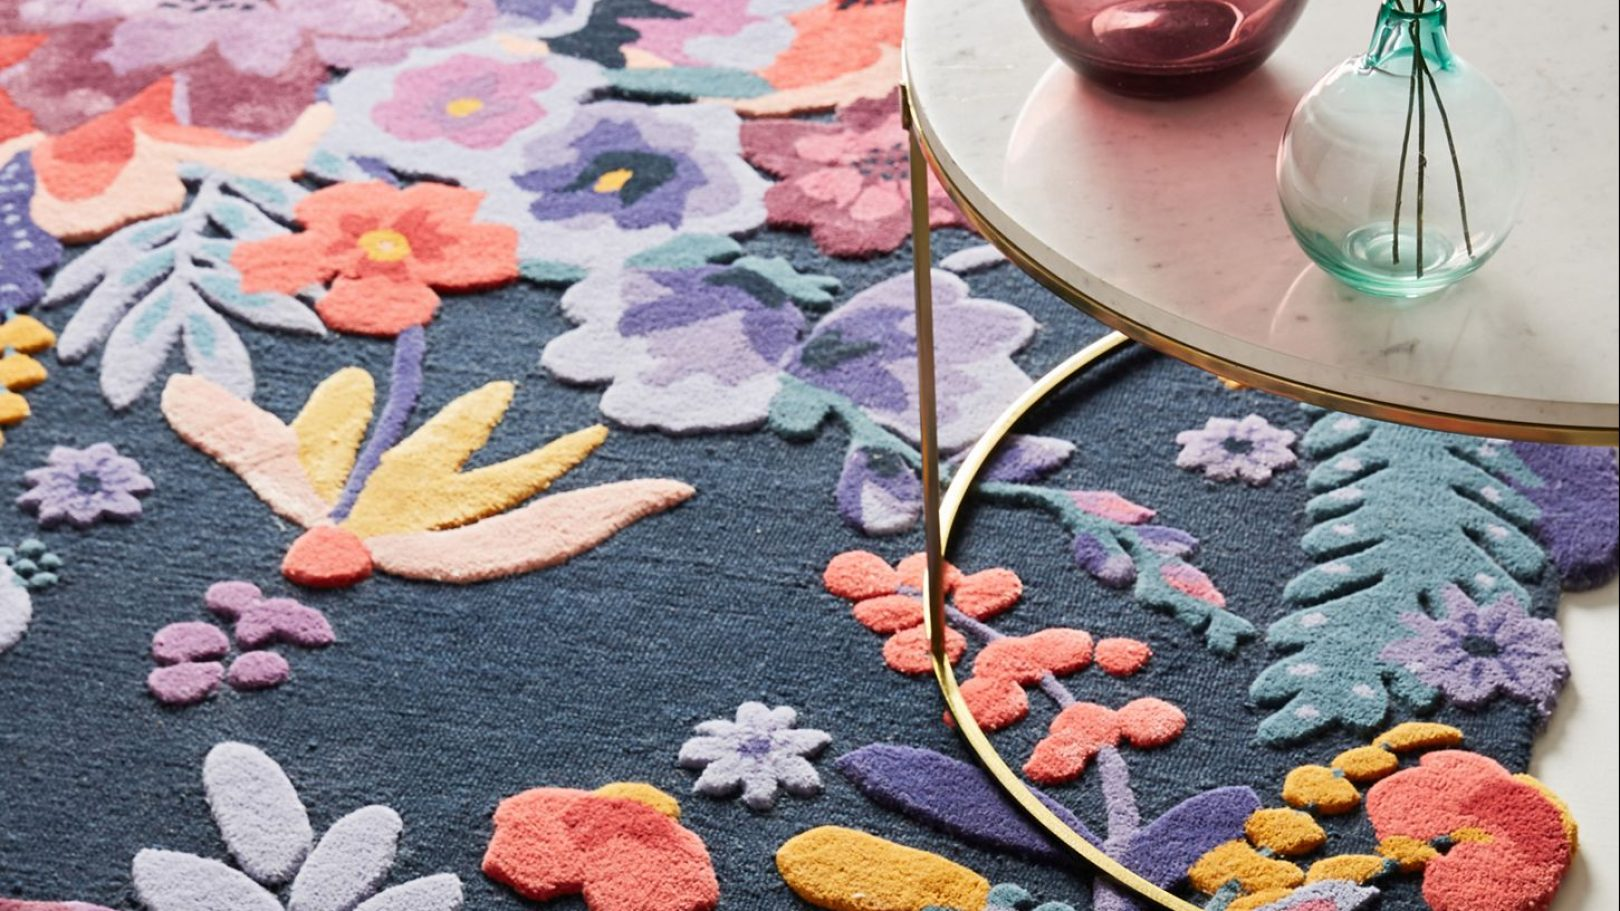 I've never loved anything more than Anthropologie's floral rugs